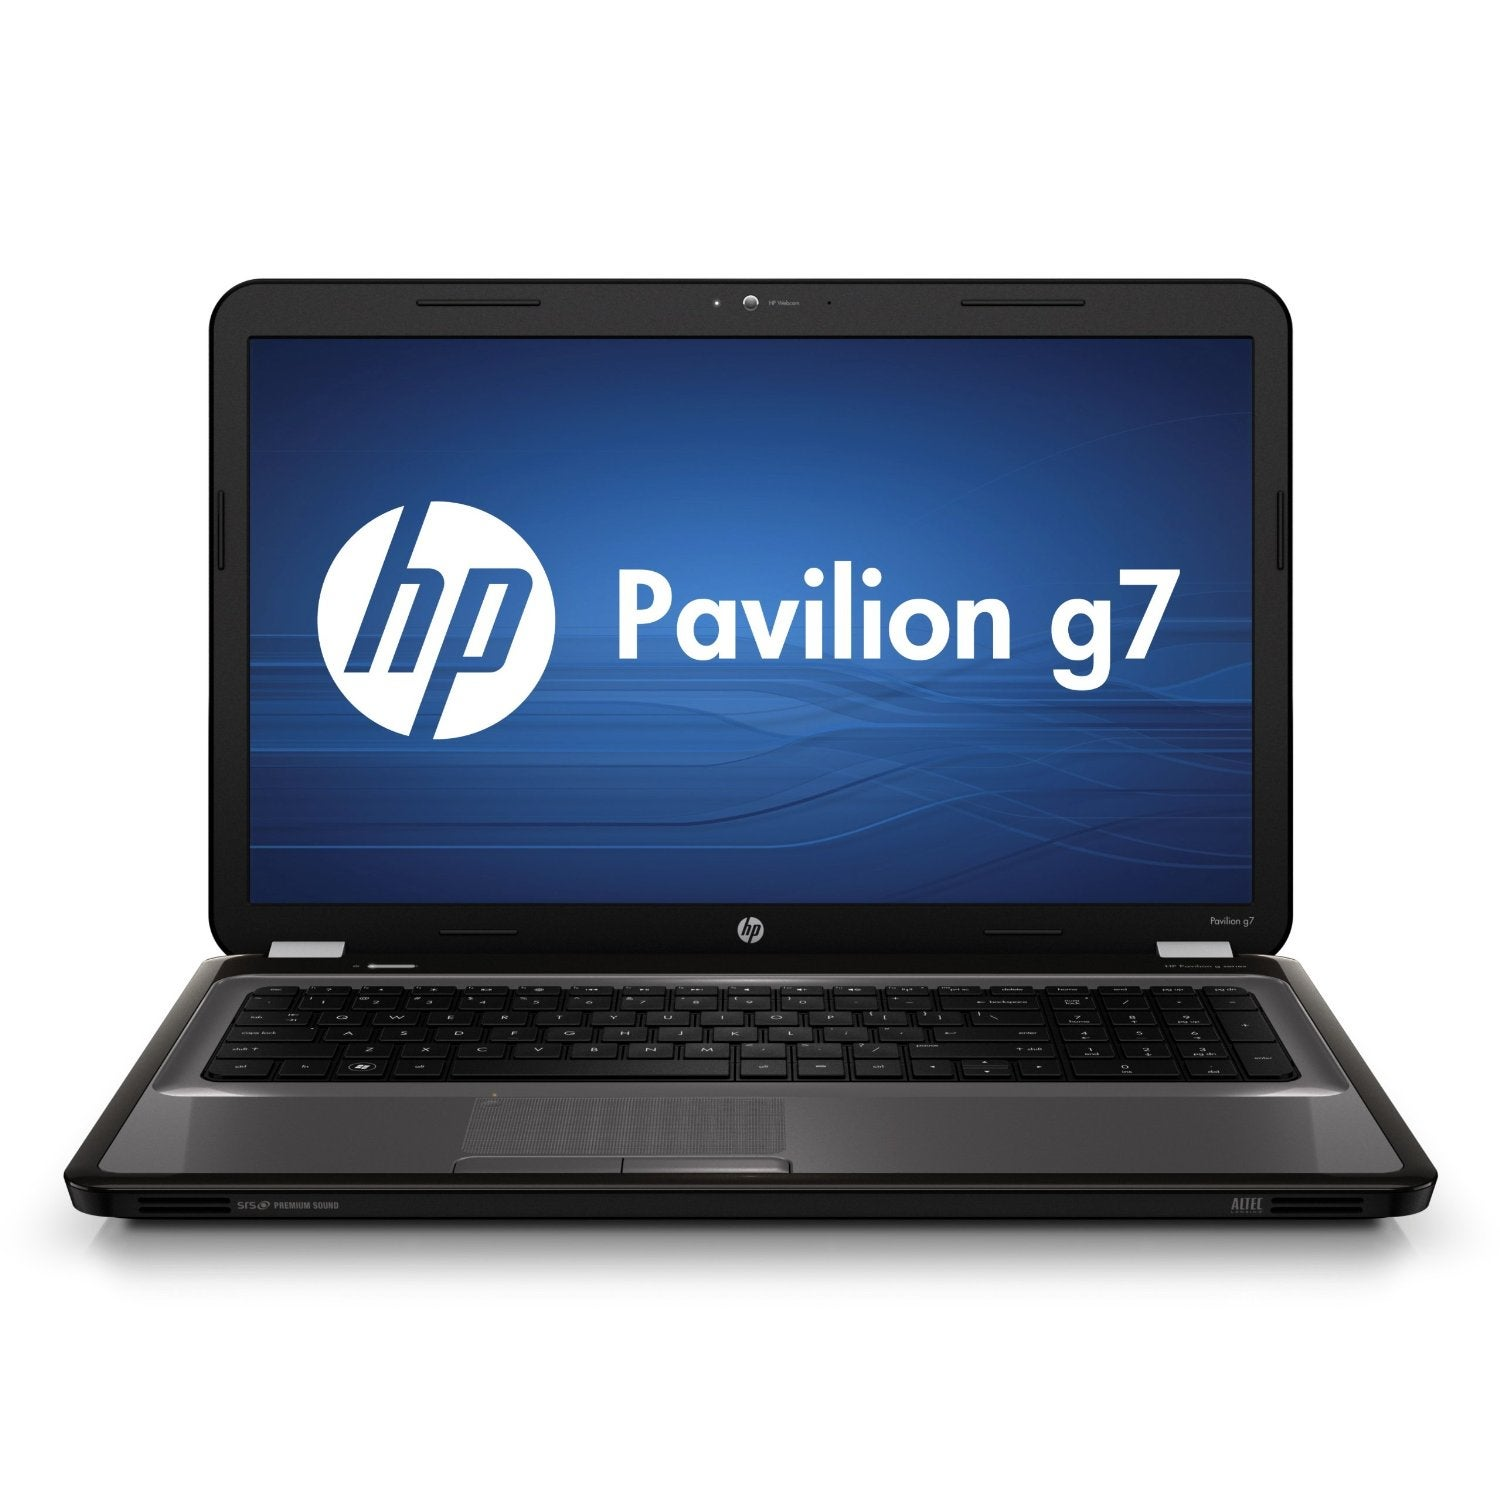 HP Pavilion g7-1310us i3 2.3GHz 640GB 17.3-inch Laptop (Refurbished) - Thumbnail 0